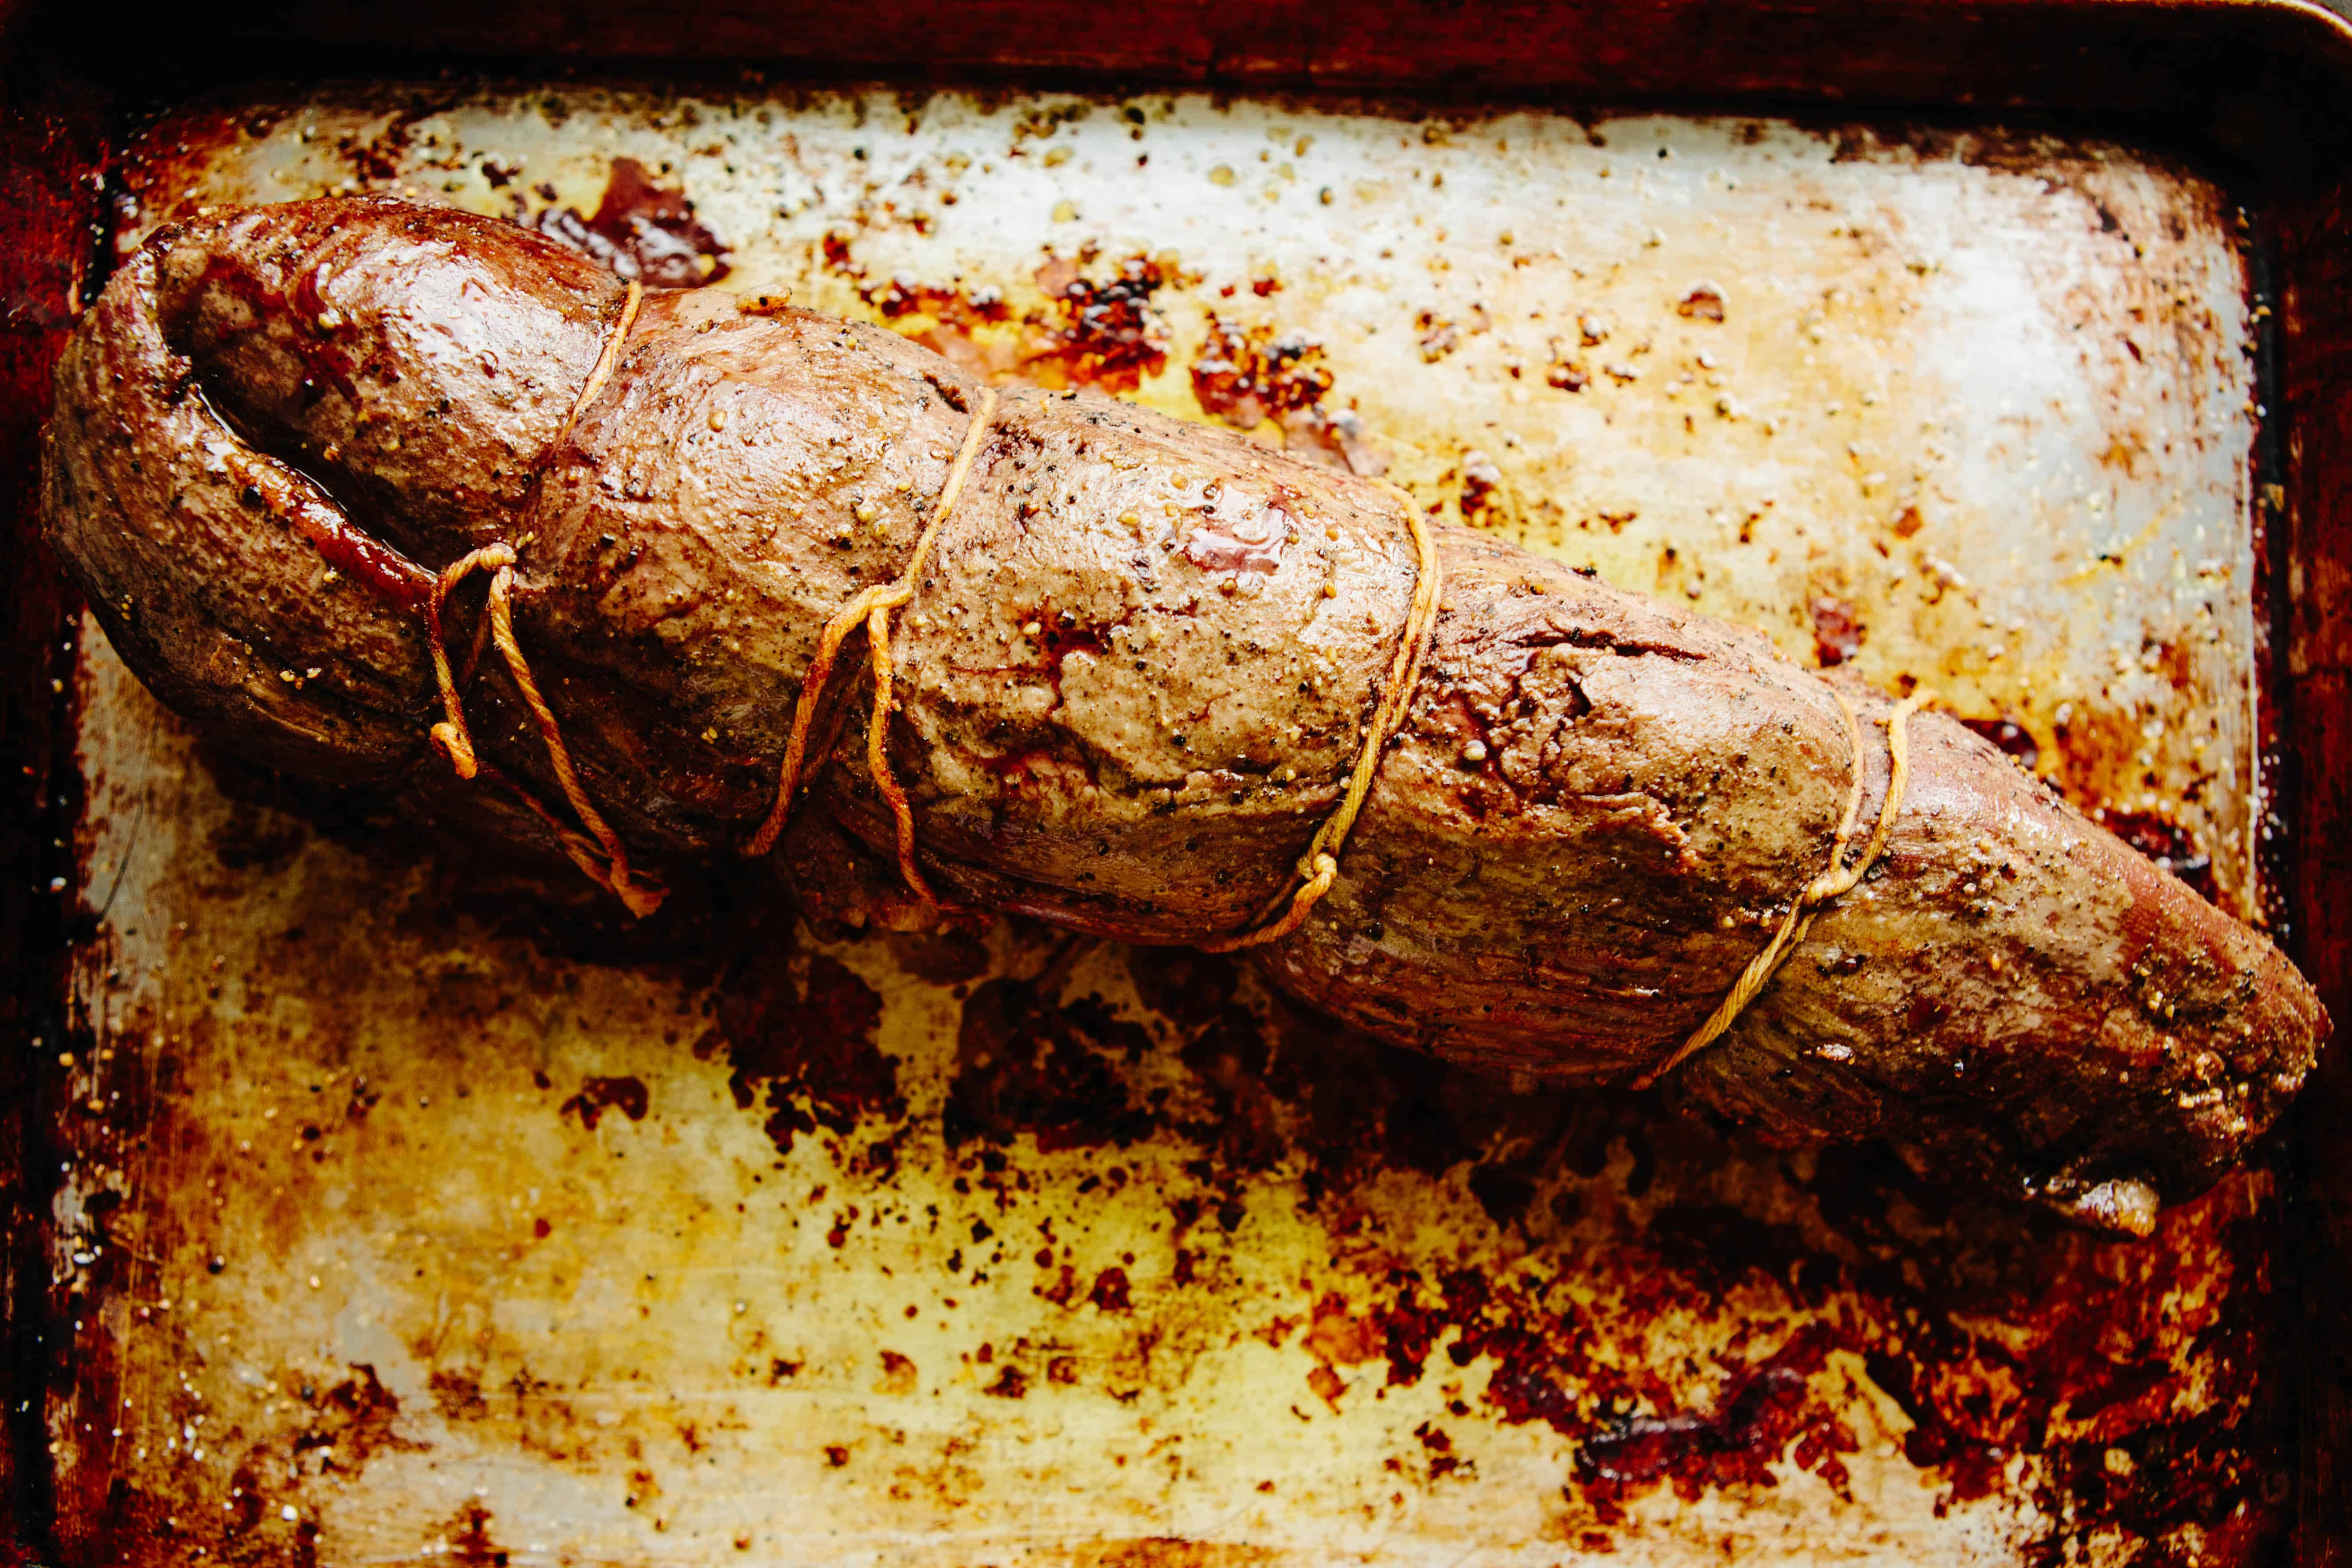 Whole Roasted Beef Tenderloin Coley Cooks